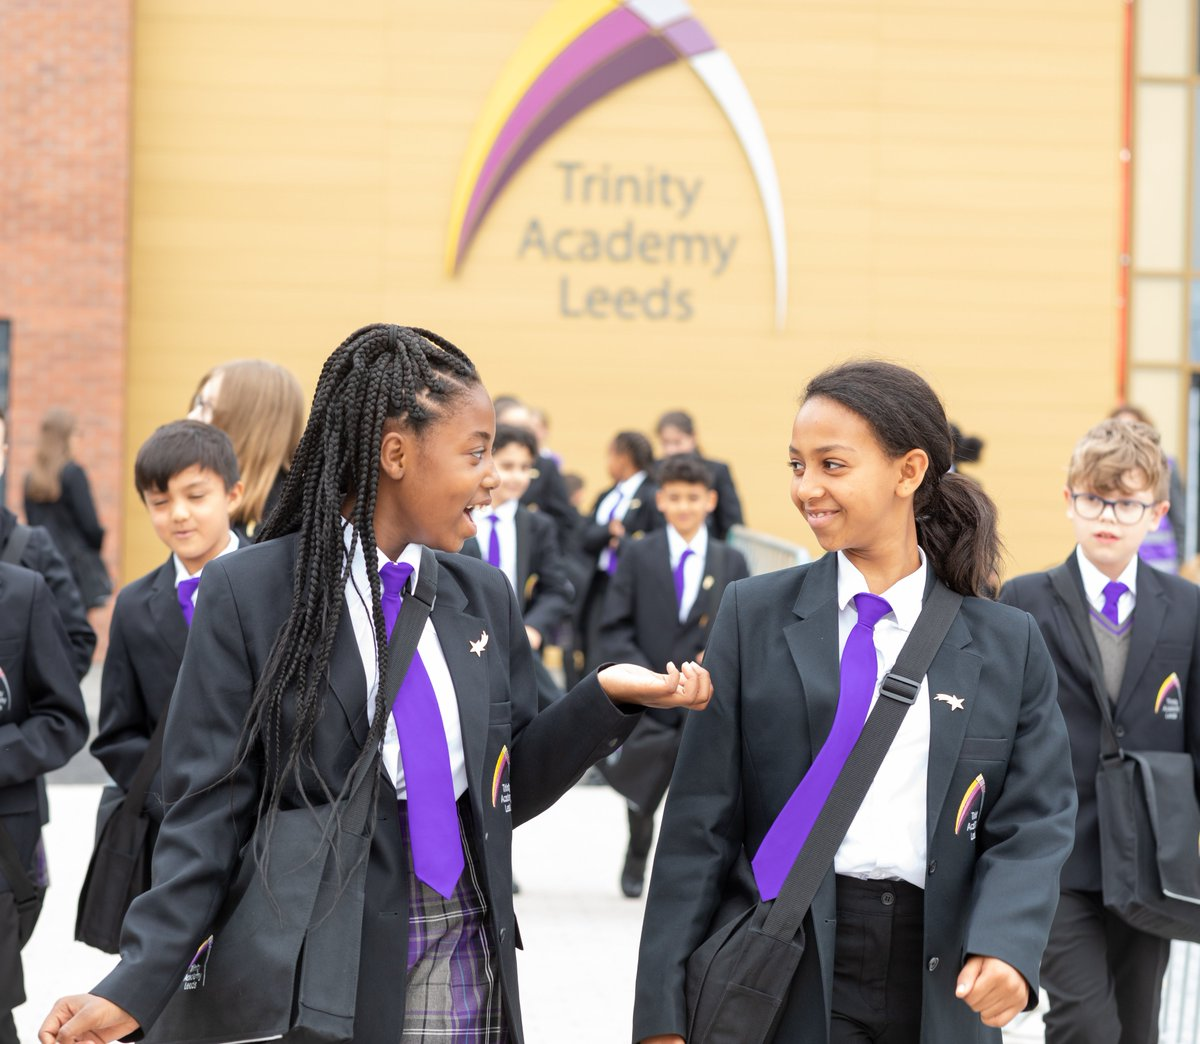 ⭐️ Open Evening Tomorrow! Our 2022 #Year7 admissions #OpenEvening is 29 September from 5.00pm - 7.00pm ✨ This event is an exciting opportunity to look around our NEW academy, hear from our Principal & more 😃💬 We can't wait to meet our future parents 💜 Bring on tomorrow!